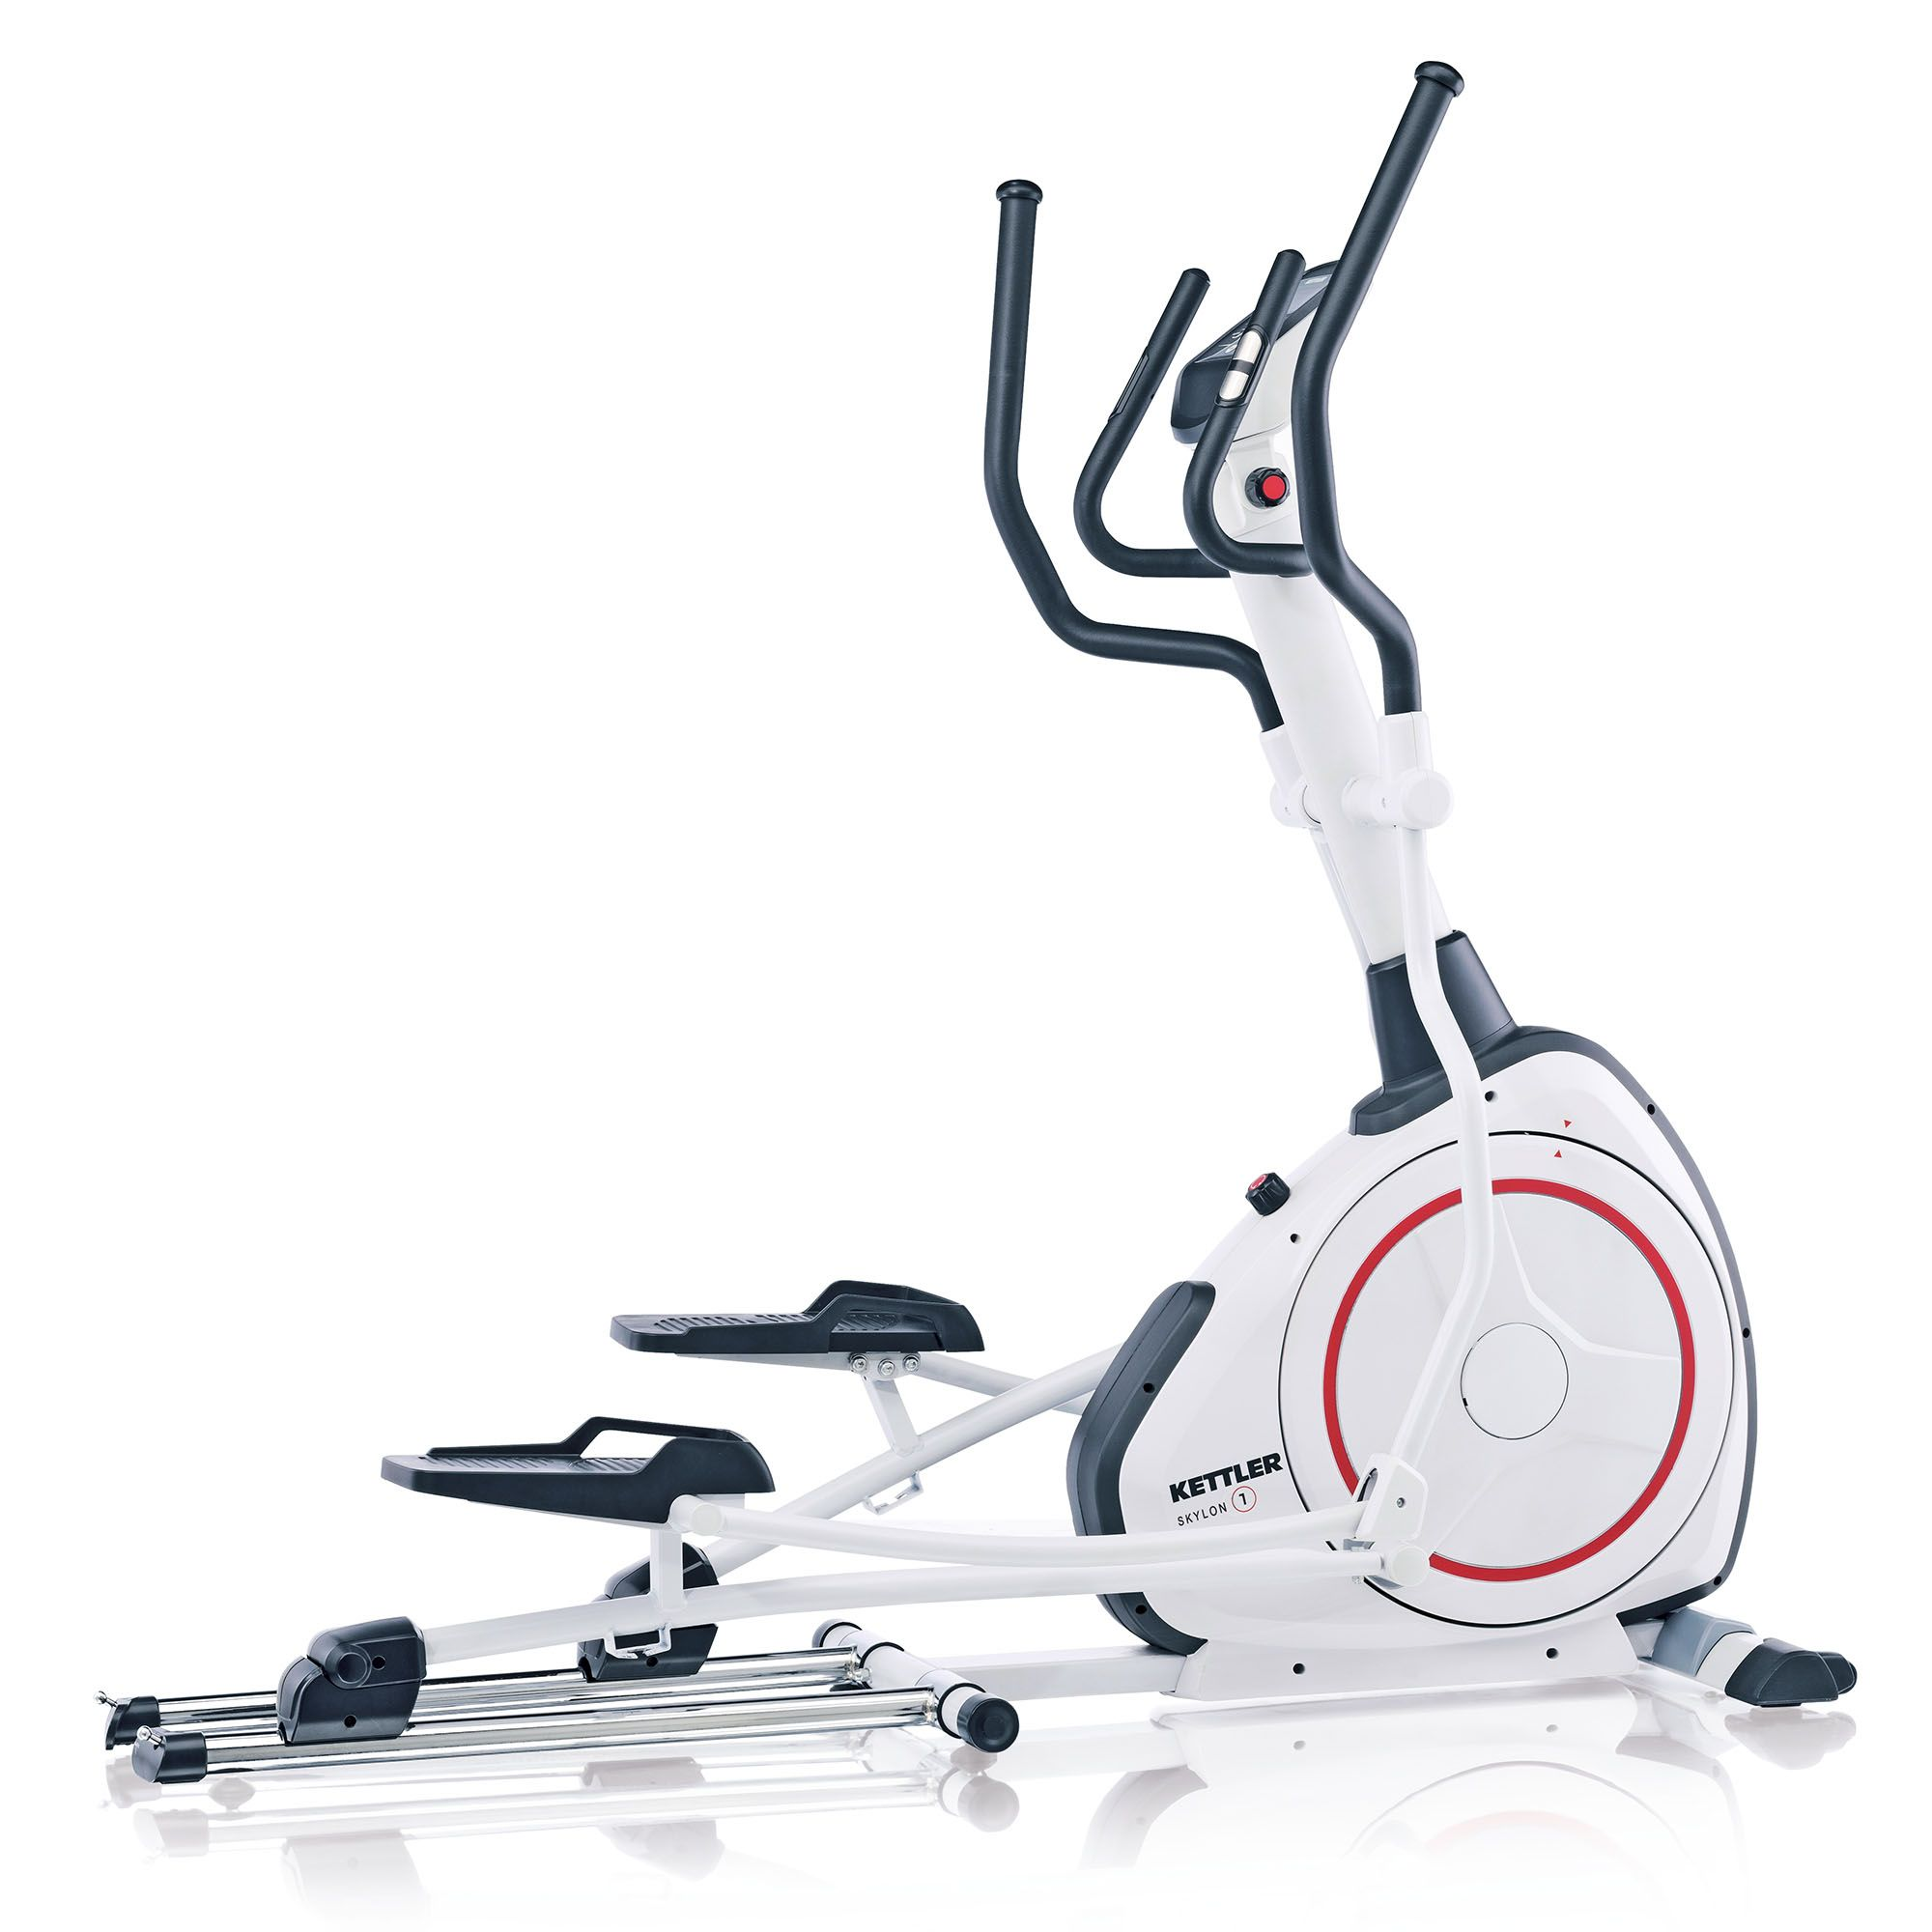 Kettler Fitness Kettler Skylon 1 Elliptical Cross Trainer Sweatband